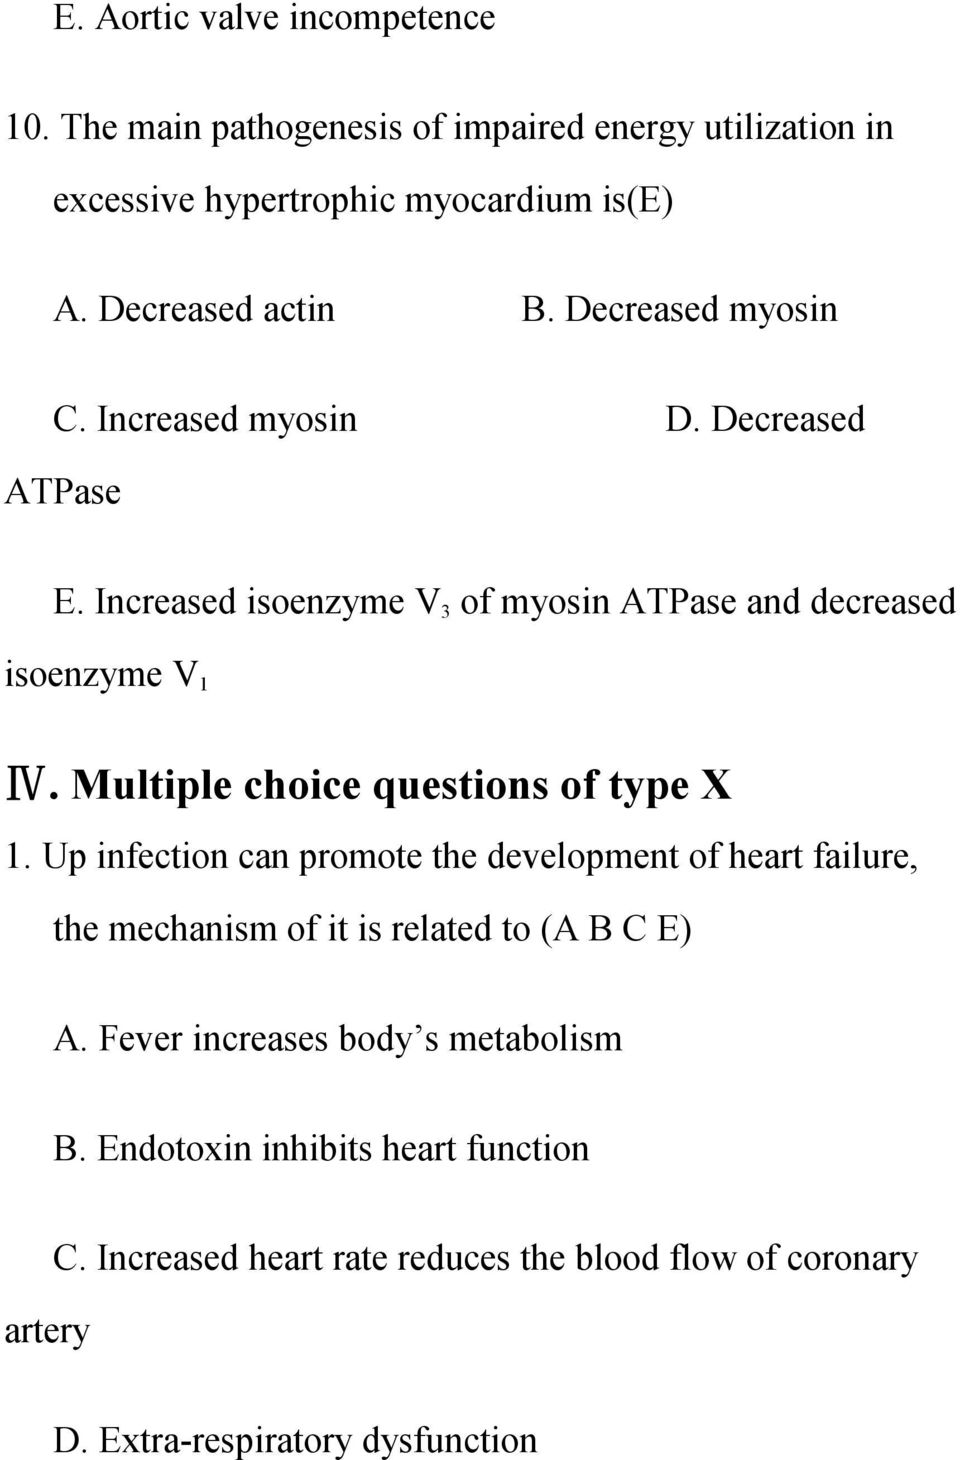 Multiple choice questions of type X 1. Up infection can promote the development of heart failure, the mechanism of it is related to (A B C E) A.